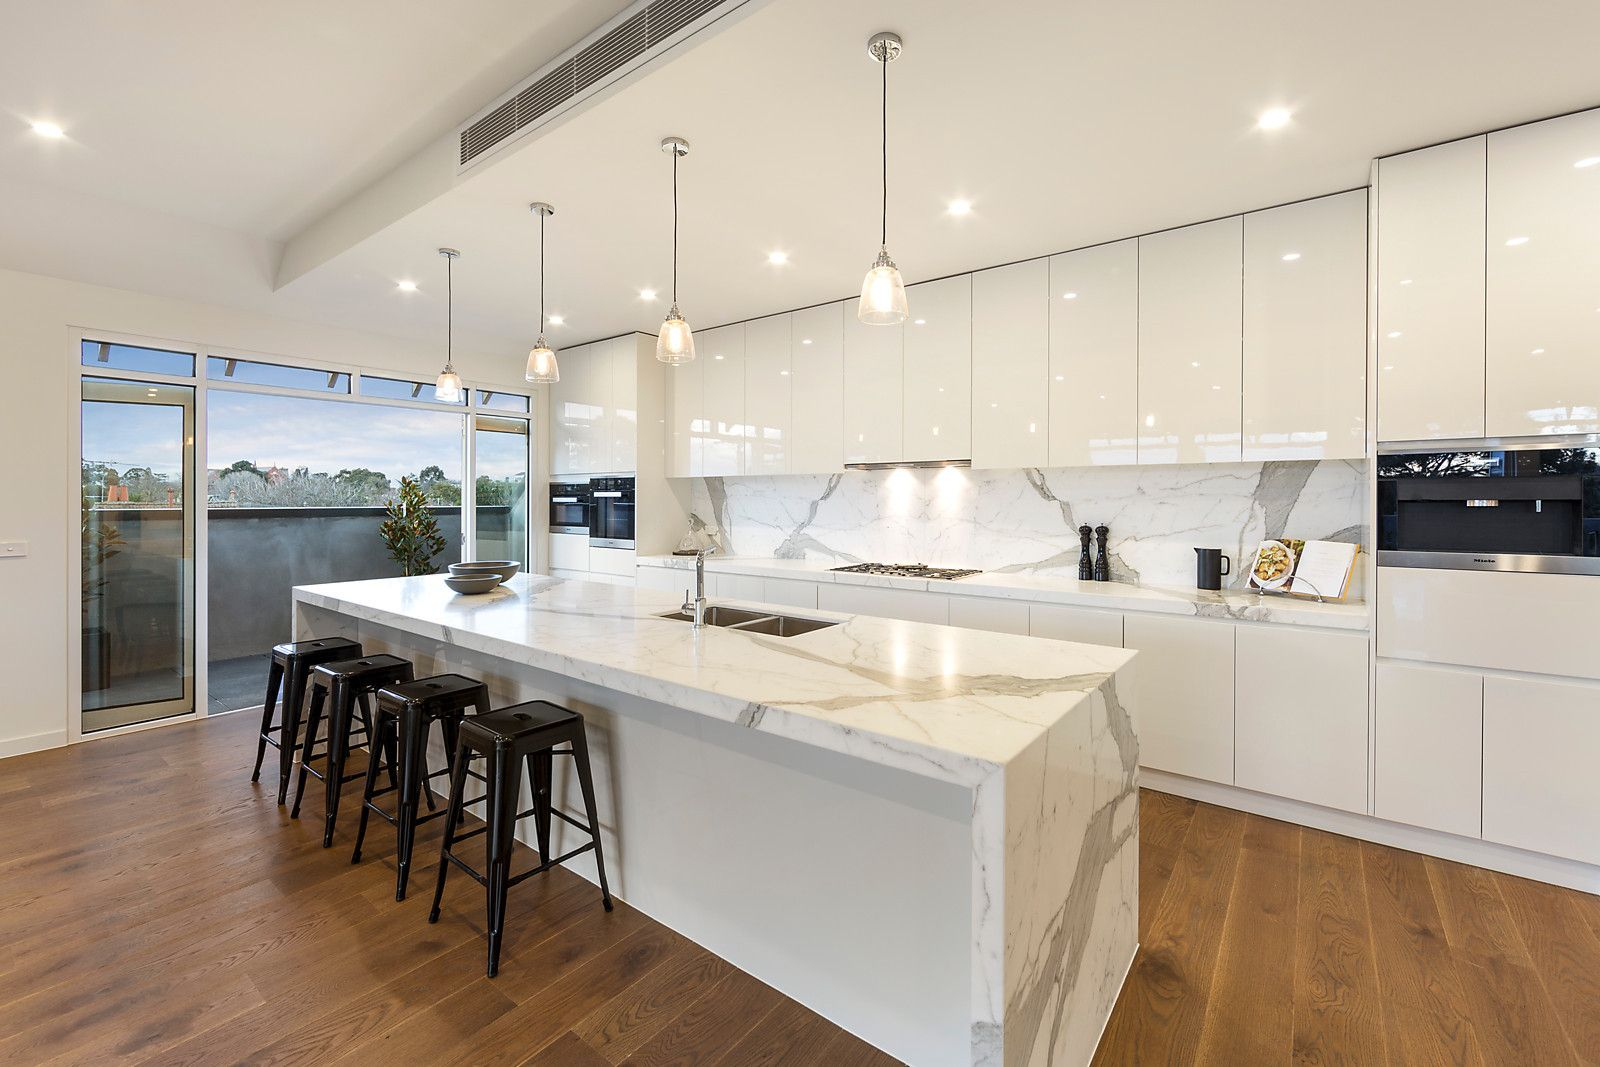 Modern White Marble Kitchen With Gloss Cabinetry And Pendant Intended For Most Popular Upland Marble Kitchen Islands (View 3 of 25)